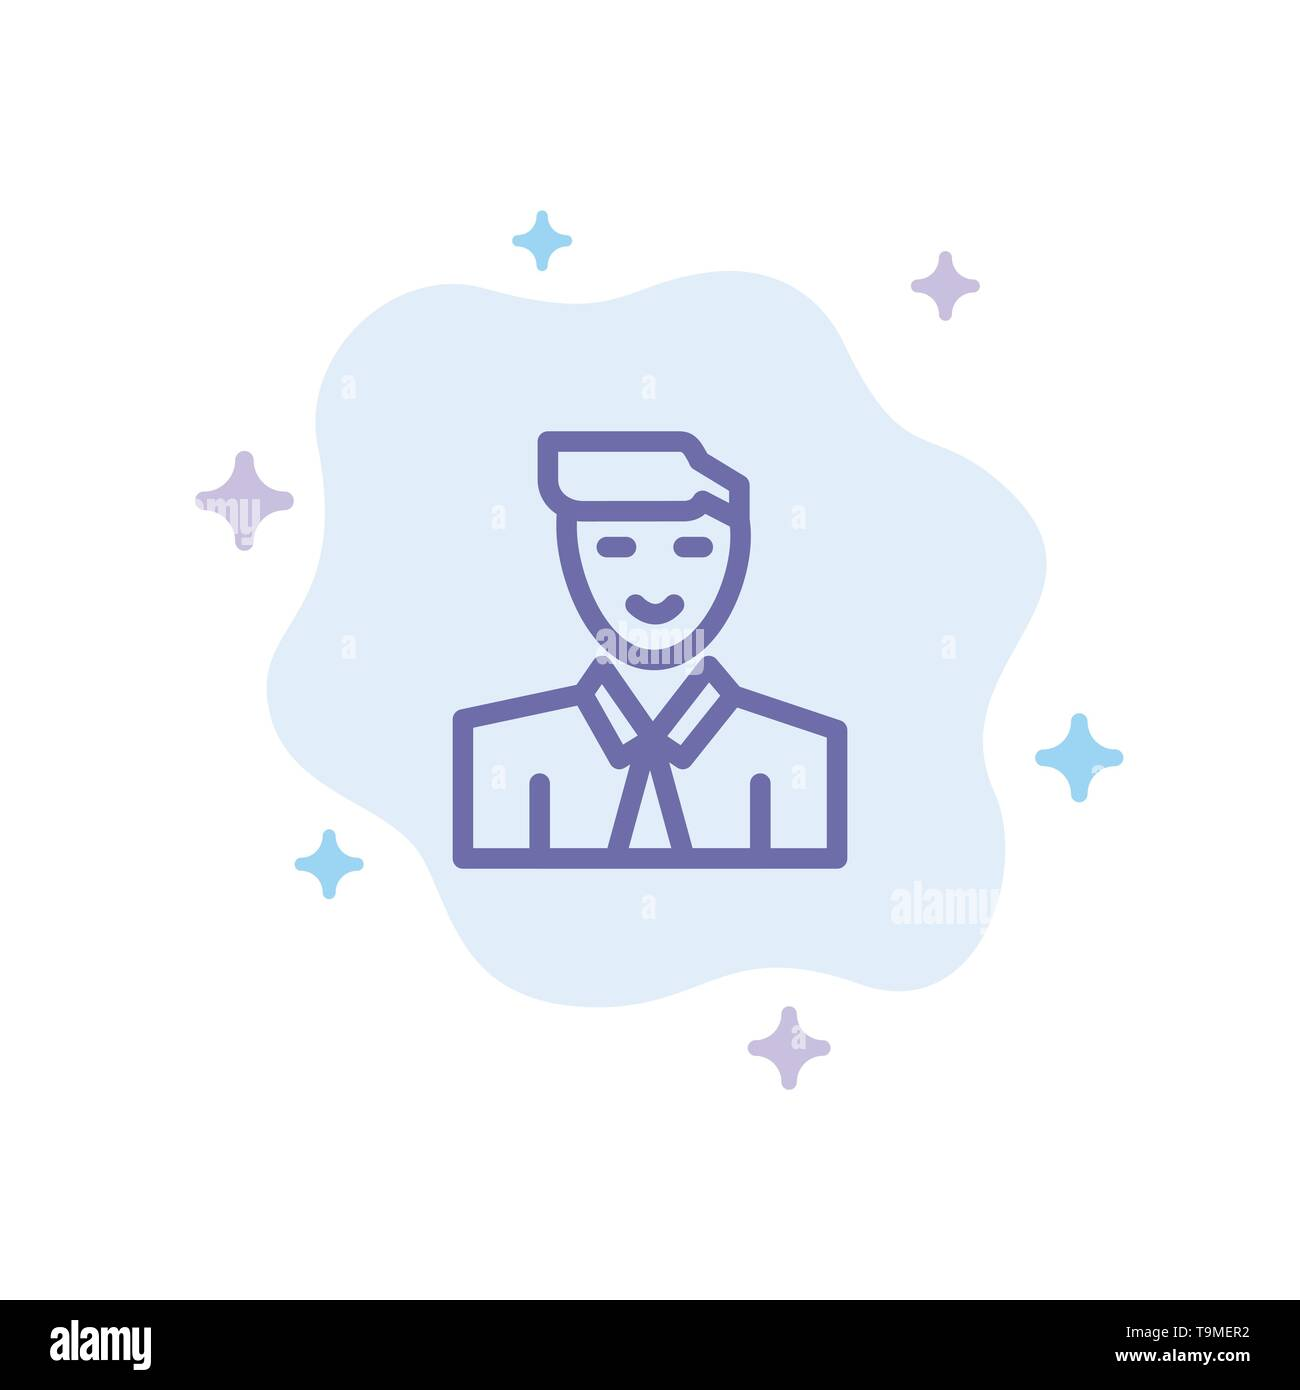 Man, User, Student, Teacher, Avatar Blue Icon on Abstract Cloud Background - Stock Image